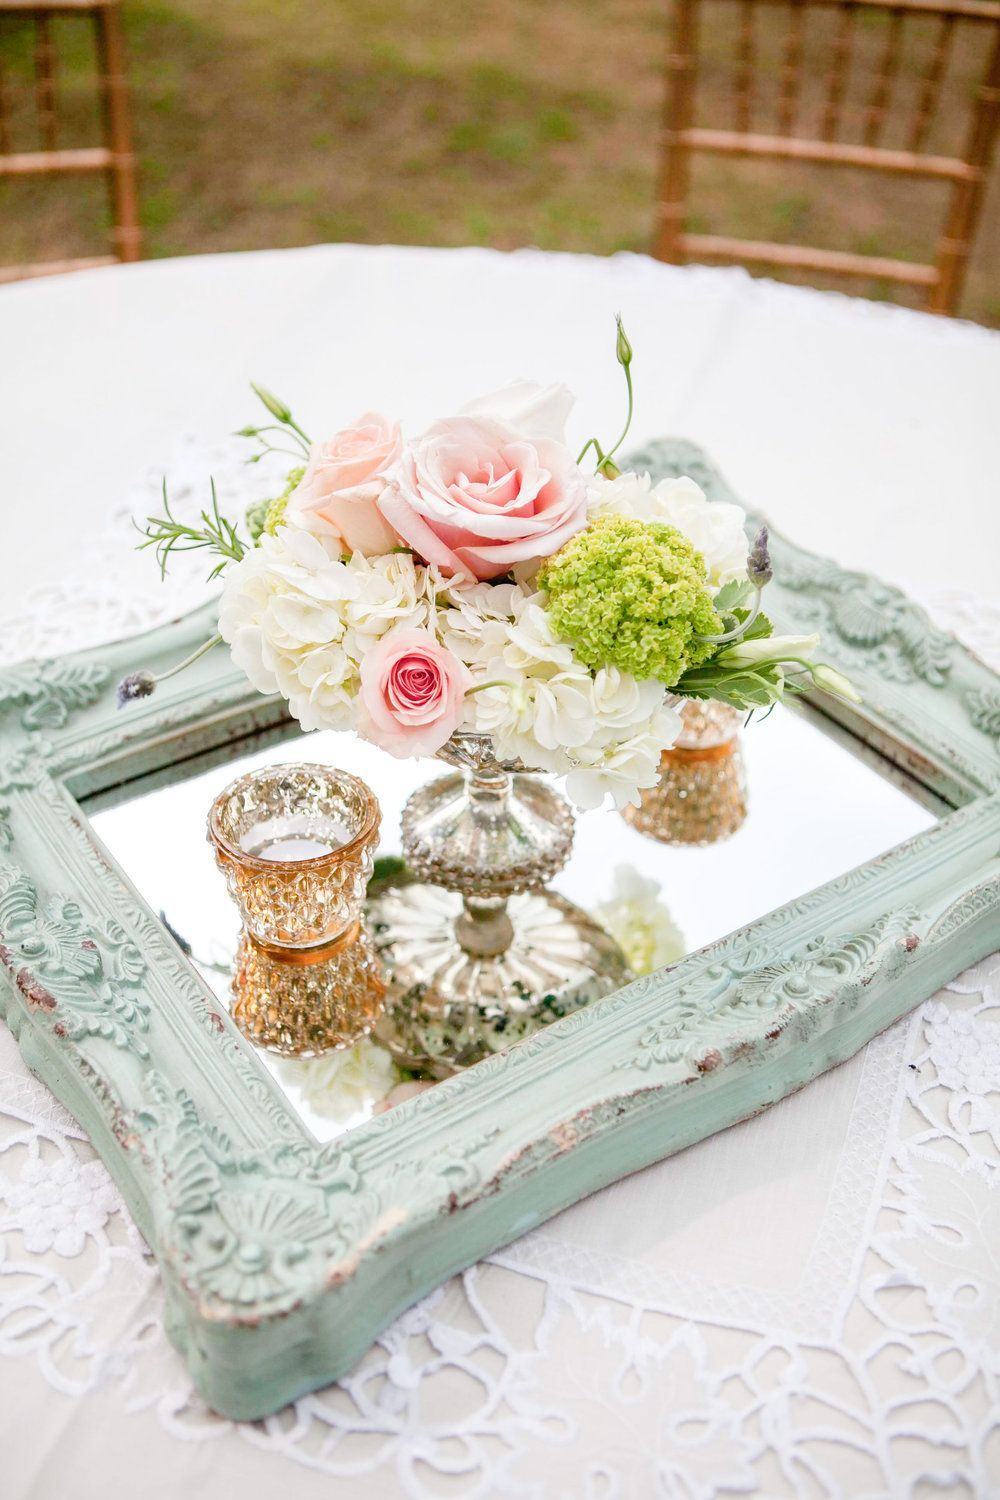 20 Inspiring Vintage Wedding Centerpieces Ideas | Wedding ...